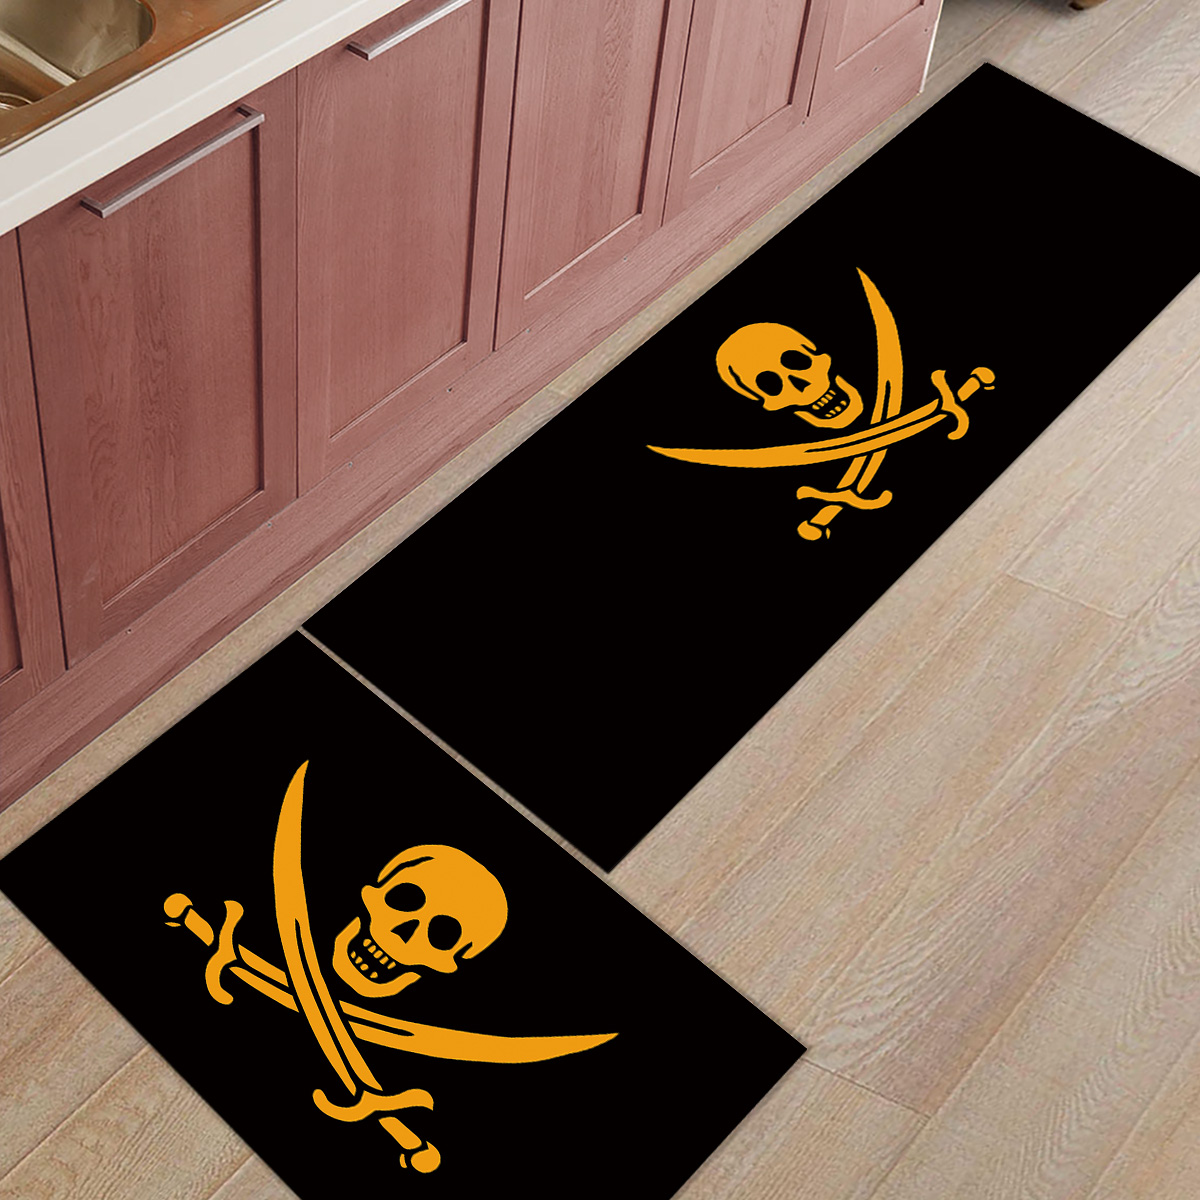 Double knife Cross Skull Pirate Cartoon  Doormats For Entrance Way Dirt Debris Mud Trapper Boot Shoes Scraper Non Slip BackingDouble knife Cross Skull Pirate Cartoon  Doormats For Entrance Way Dirt Debris Mud Trapper Boot Shoes Scraper Non Slip Backing